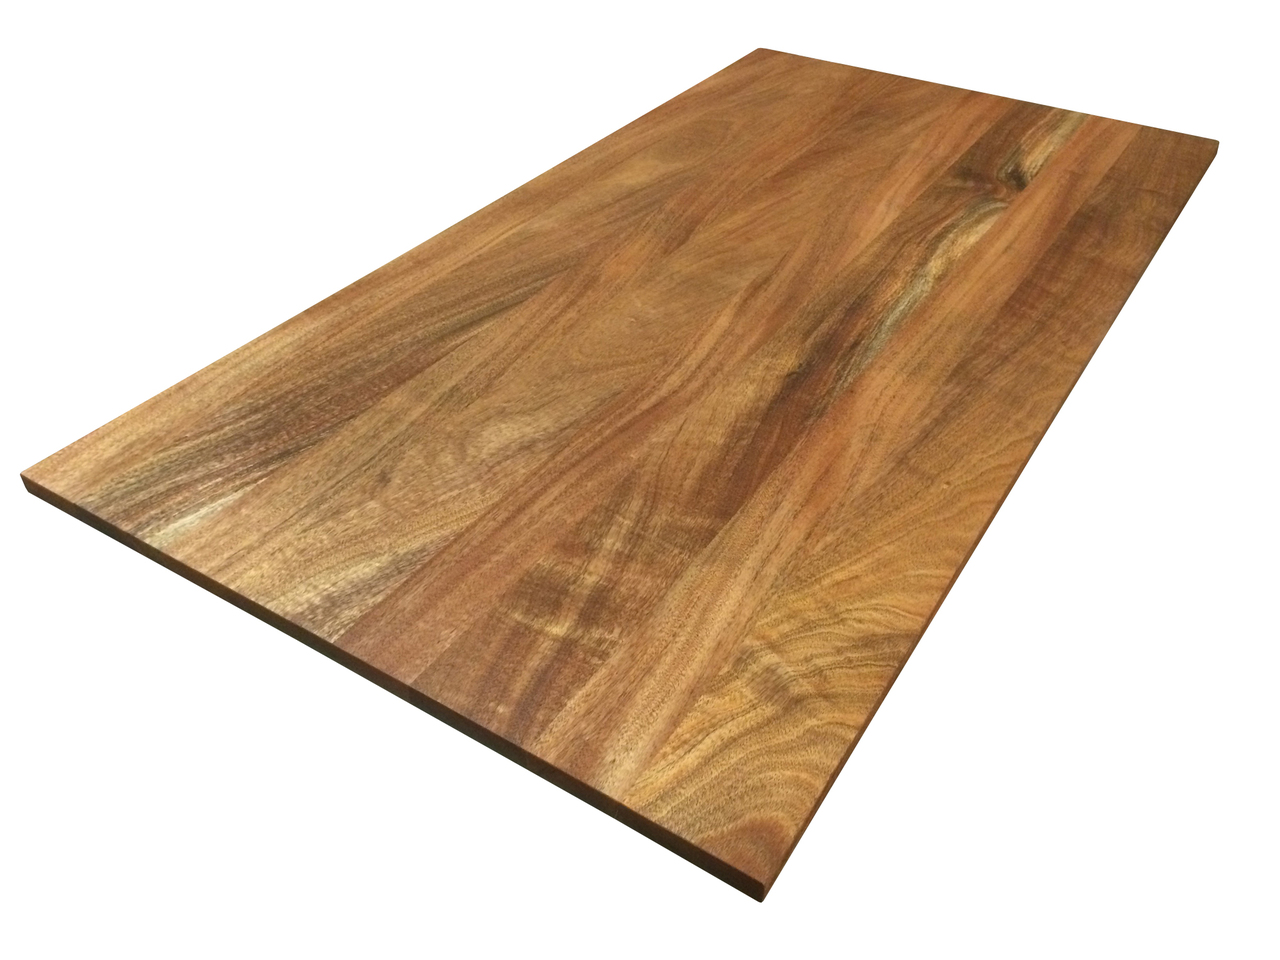 Armani Fine Woodworking African Mahogany Tabletop